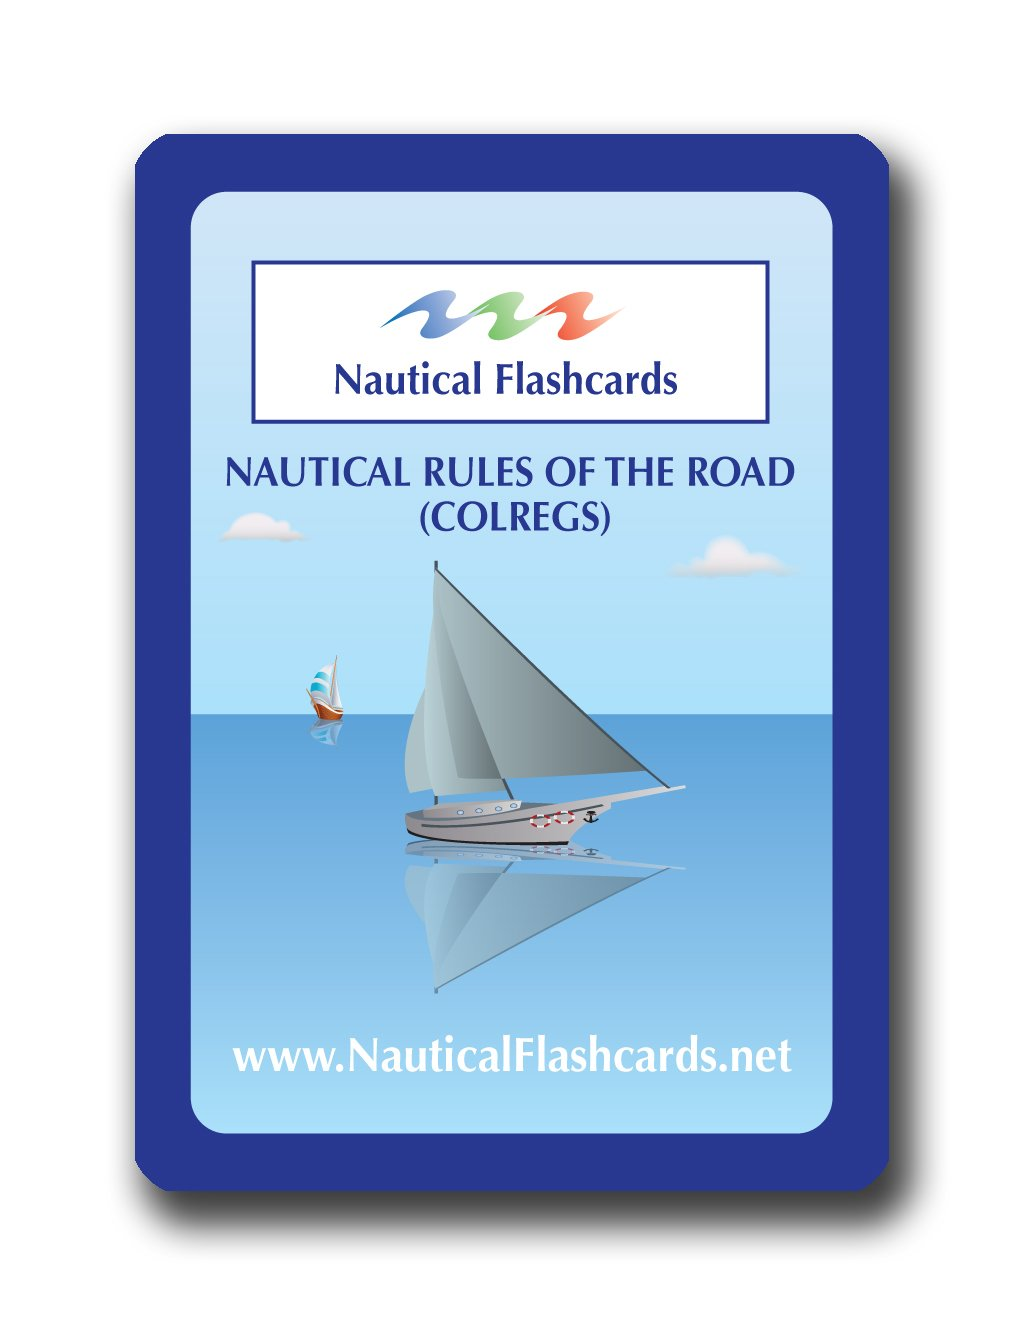 Nautical Flashcards Rules of the Road (COLREGS)